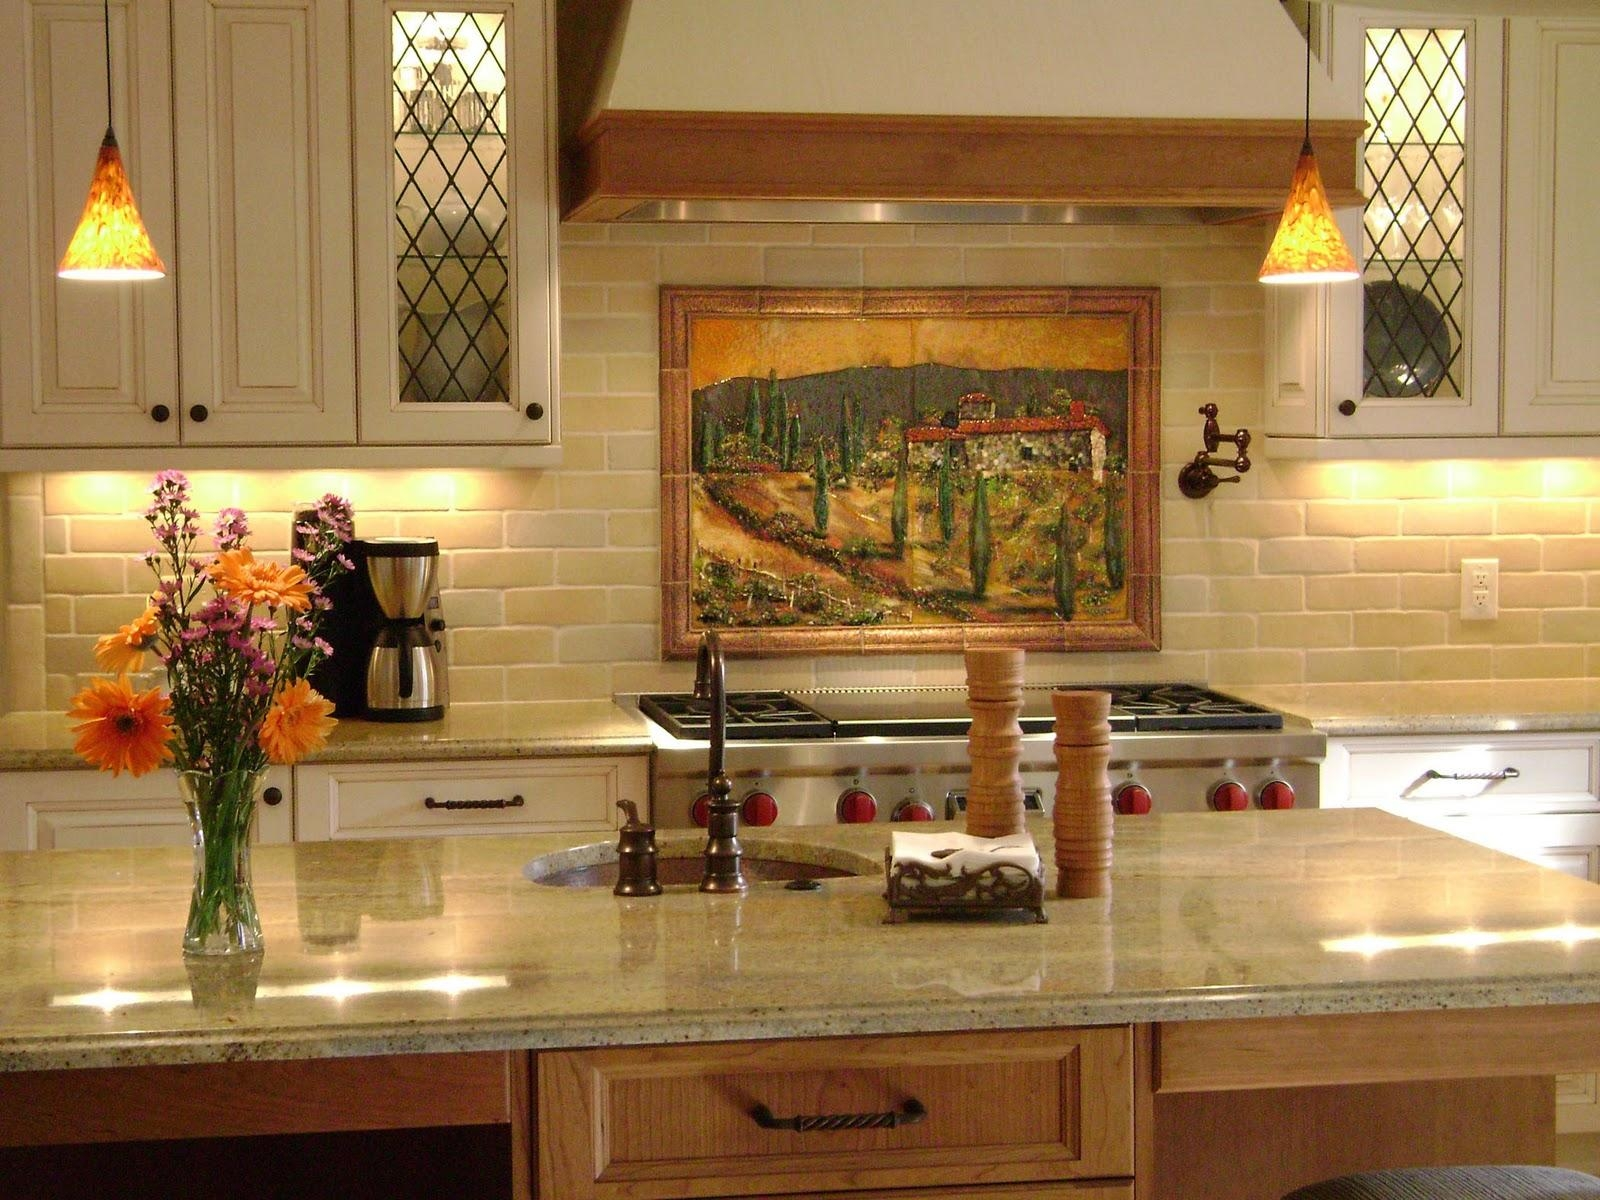 Italian Art Tuscan Kitchen Wall Decor Ideas Inexpensive Tuscan Pertaining To Italian Inspired Wall Art (View 19 of 20)